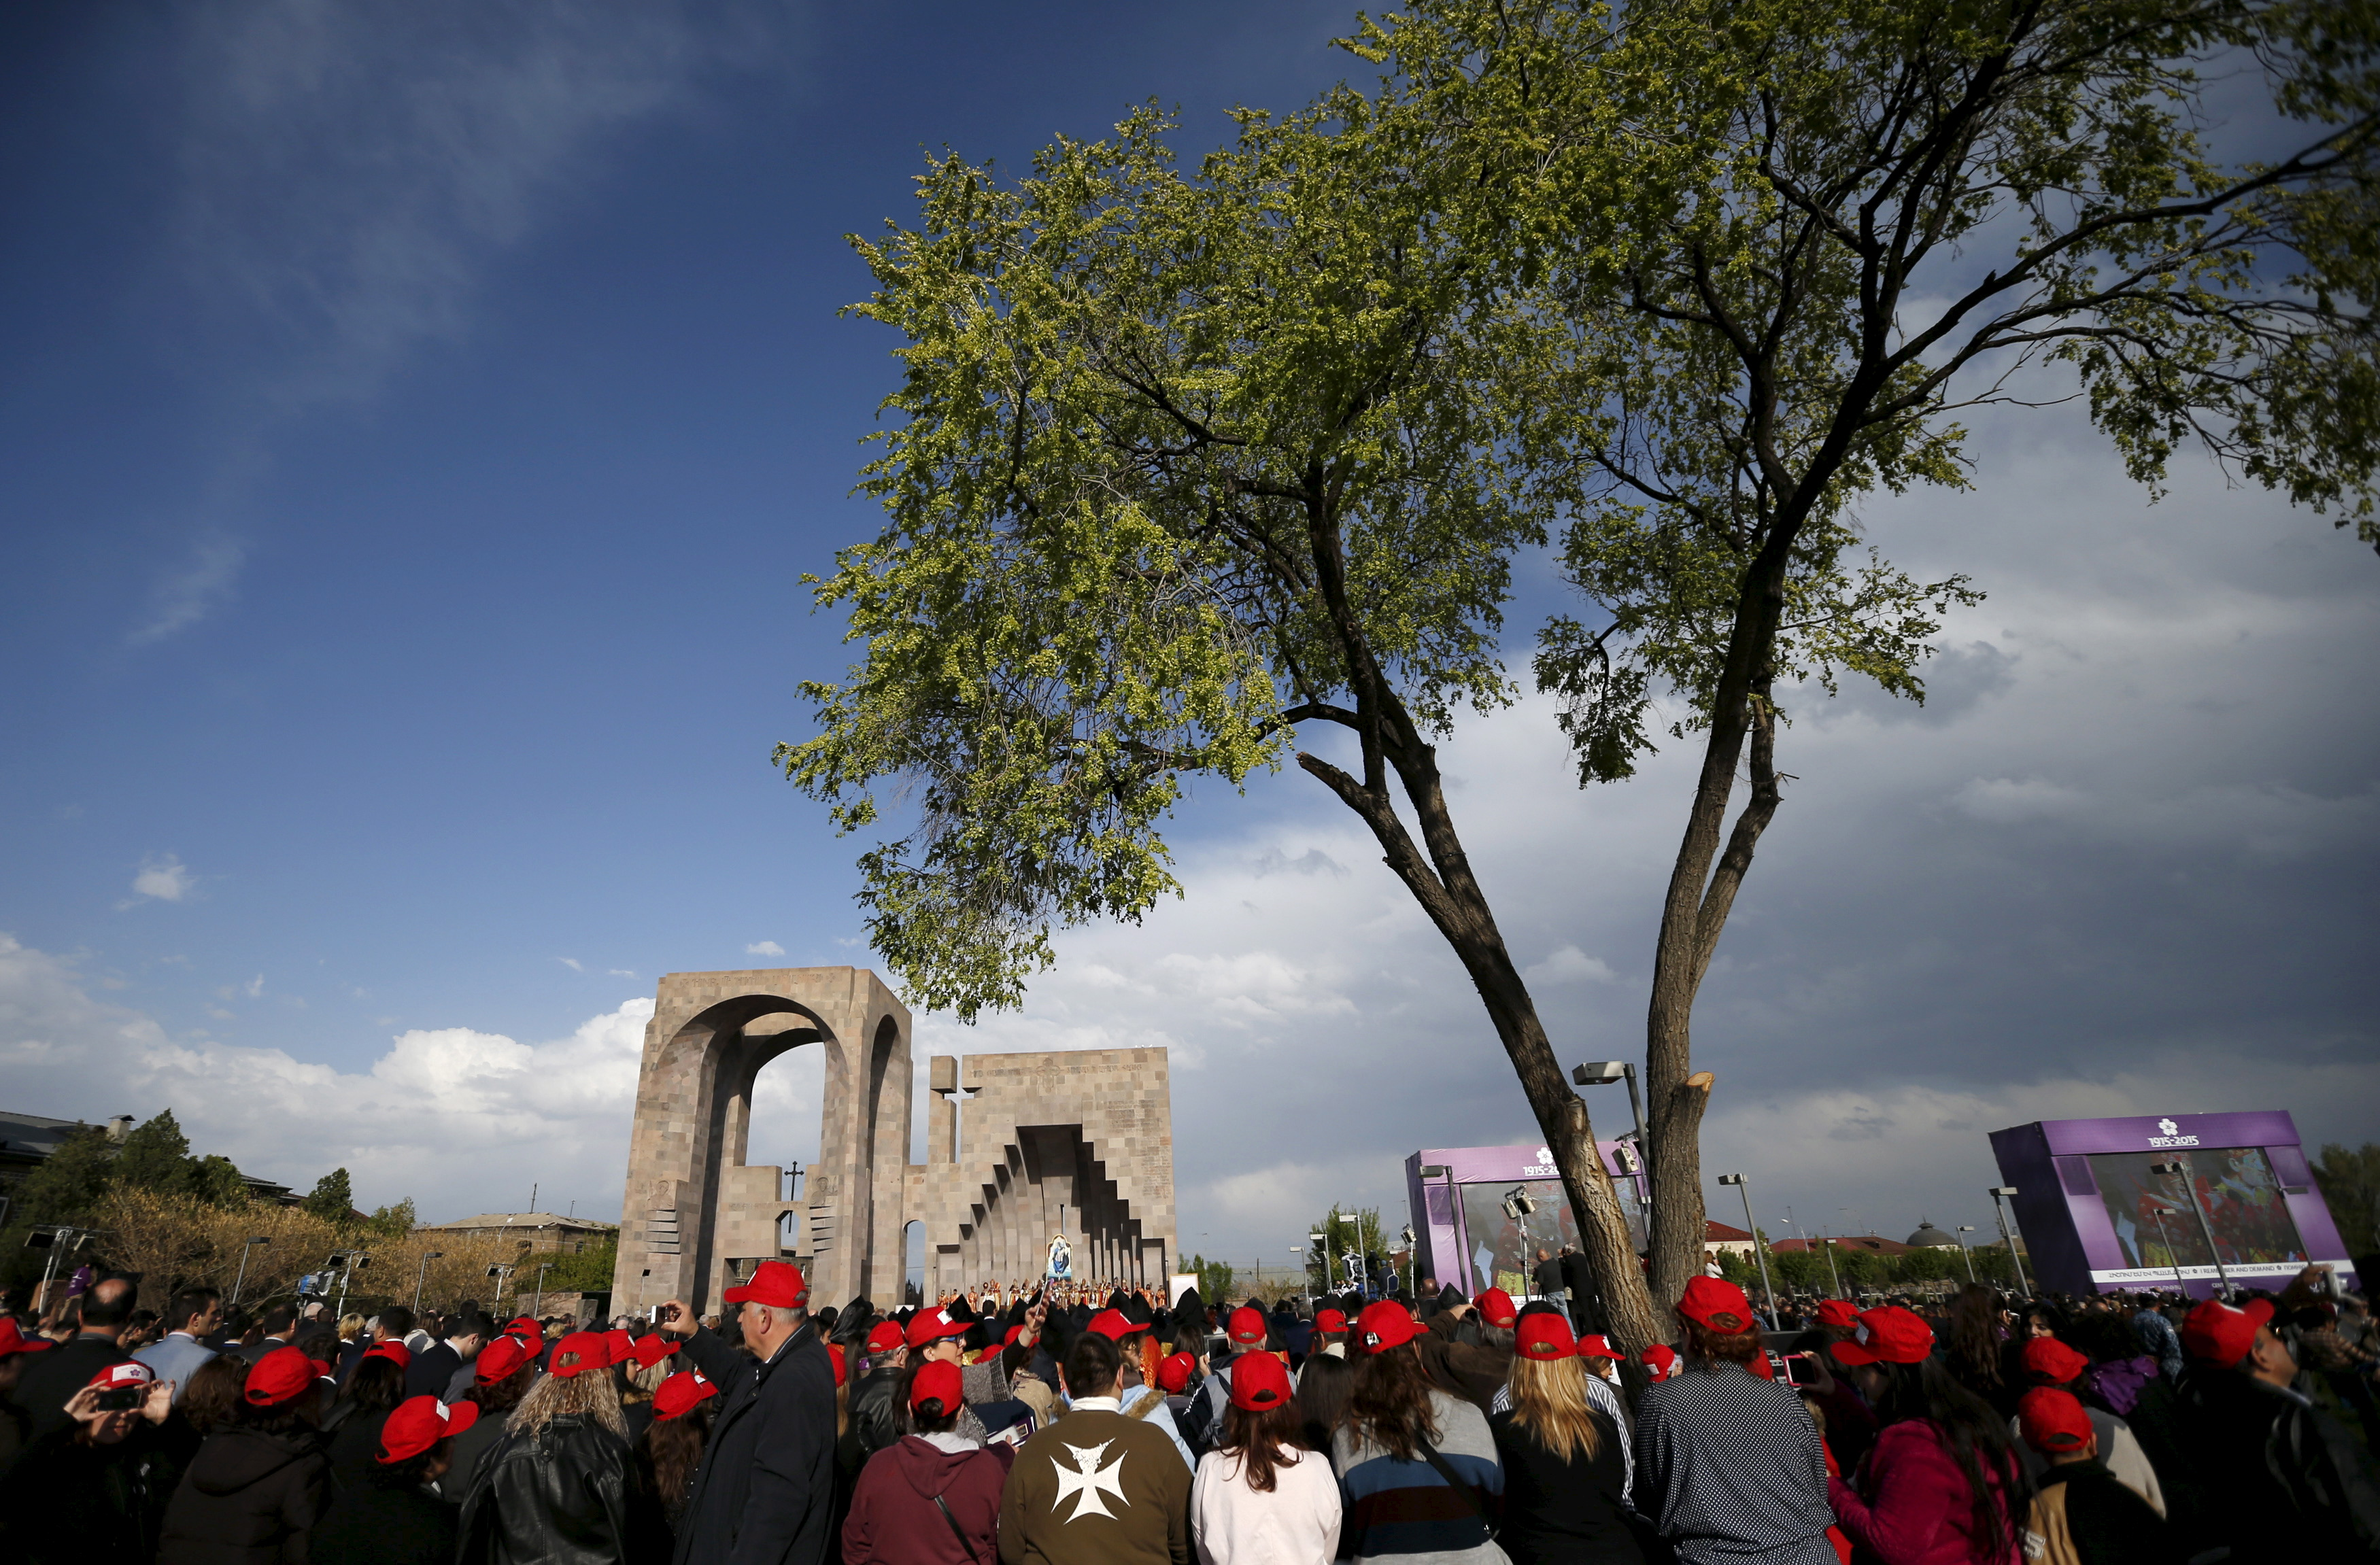 People attend a canonization ceremony for the victims of mass killings of Armenians by Ottoman Turks at the open-air altar of Armenia's main cathedral in Echmiadzin on Thursday. Photo by David Mdzinarishvili/Reuters